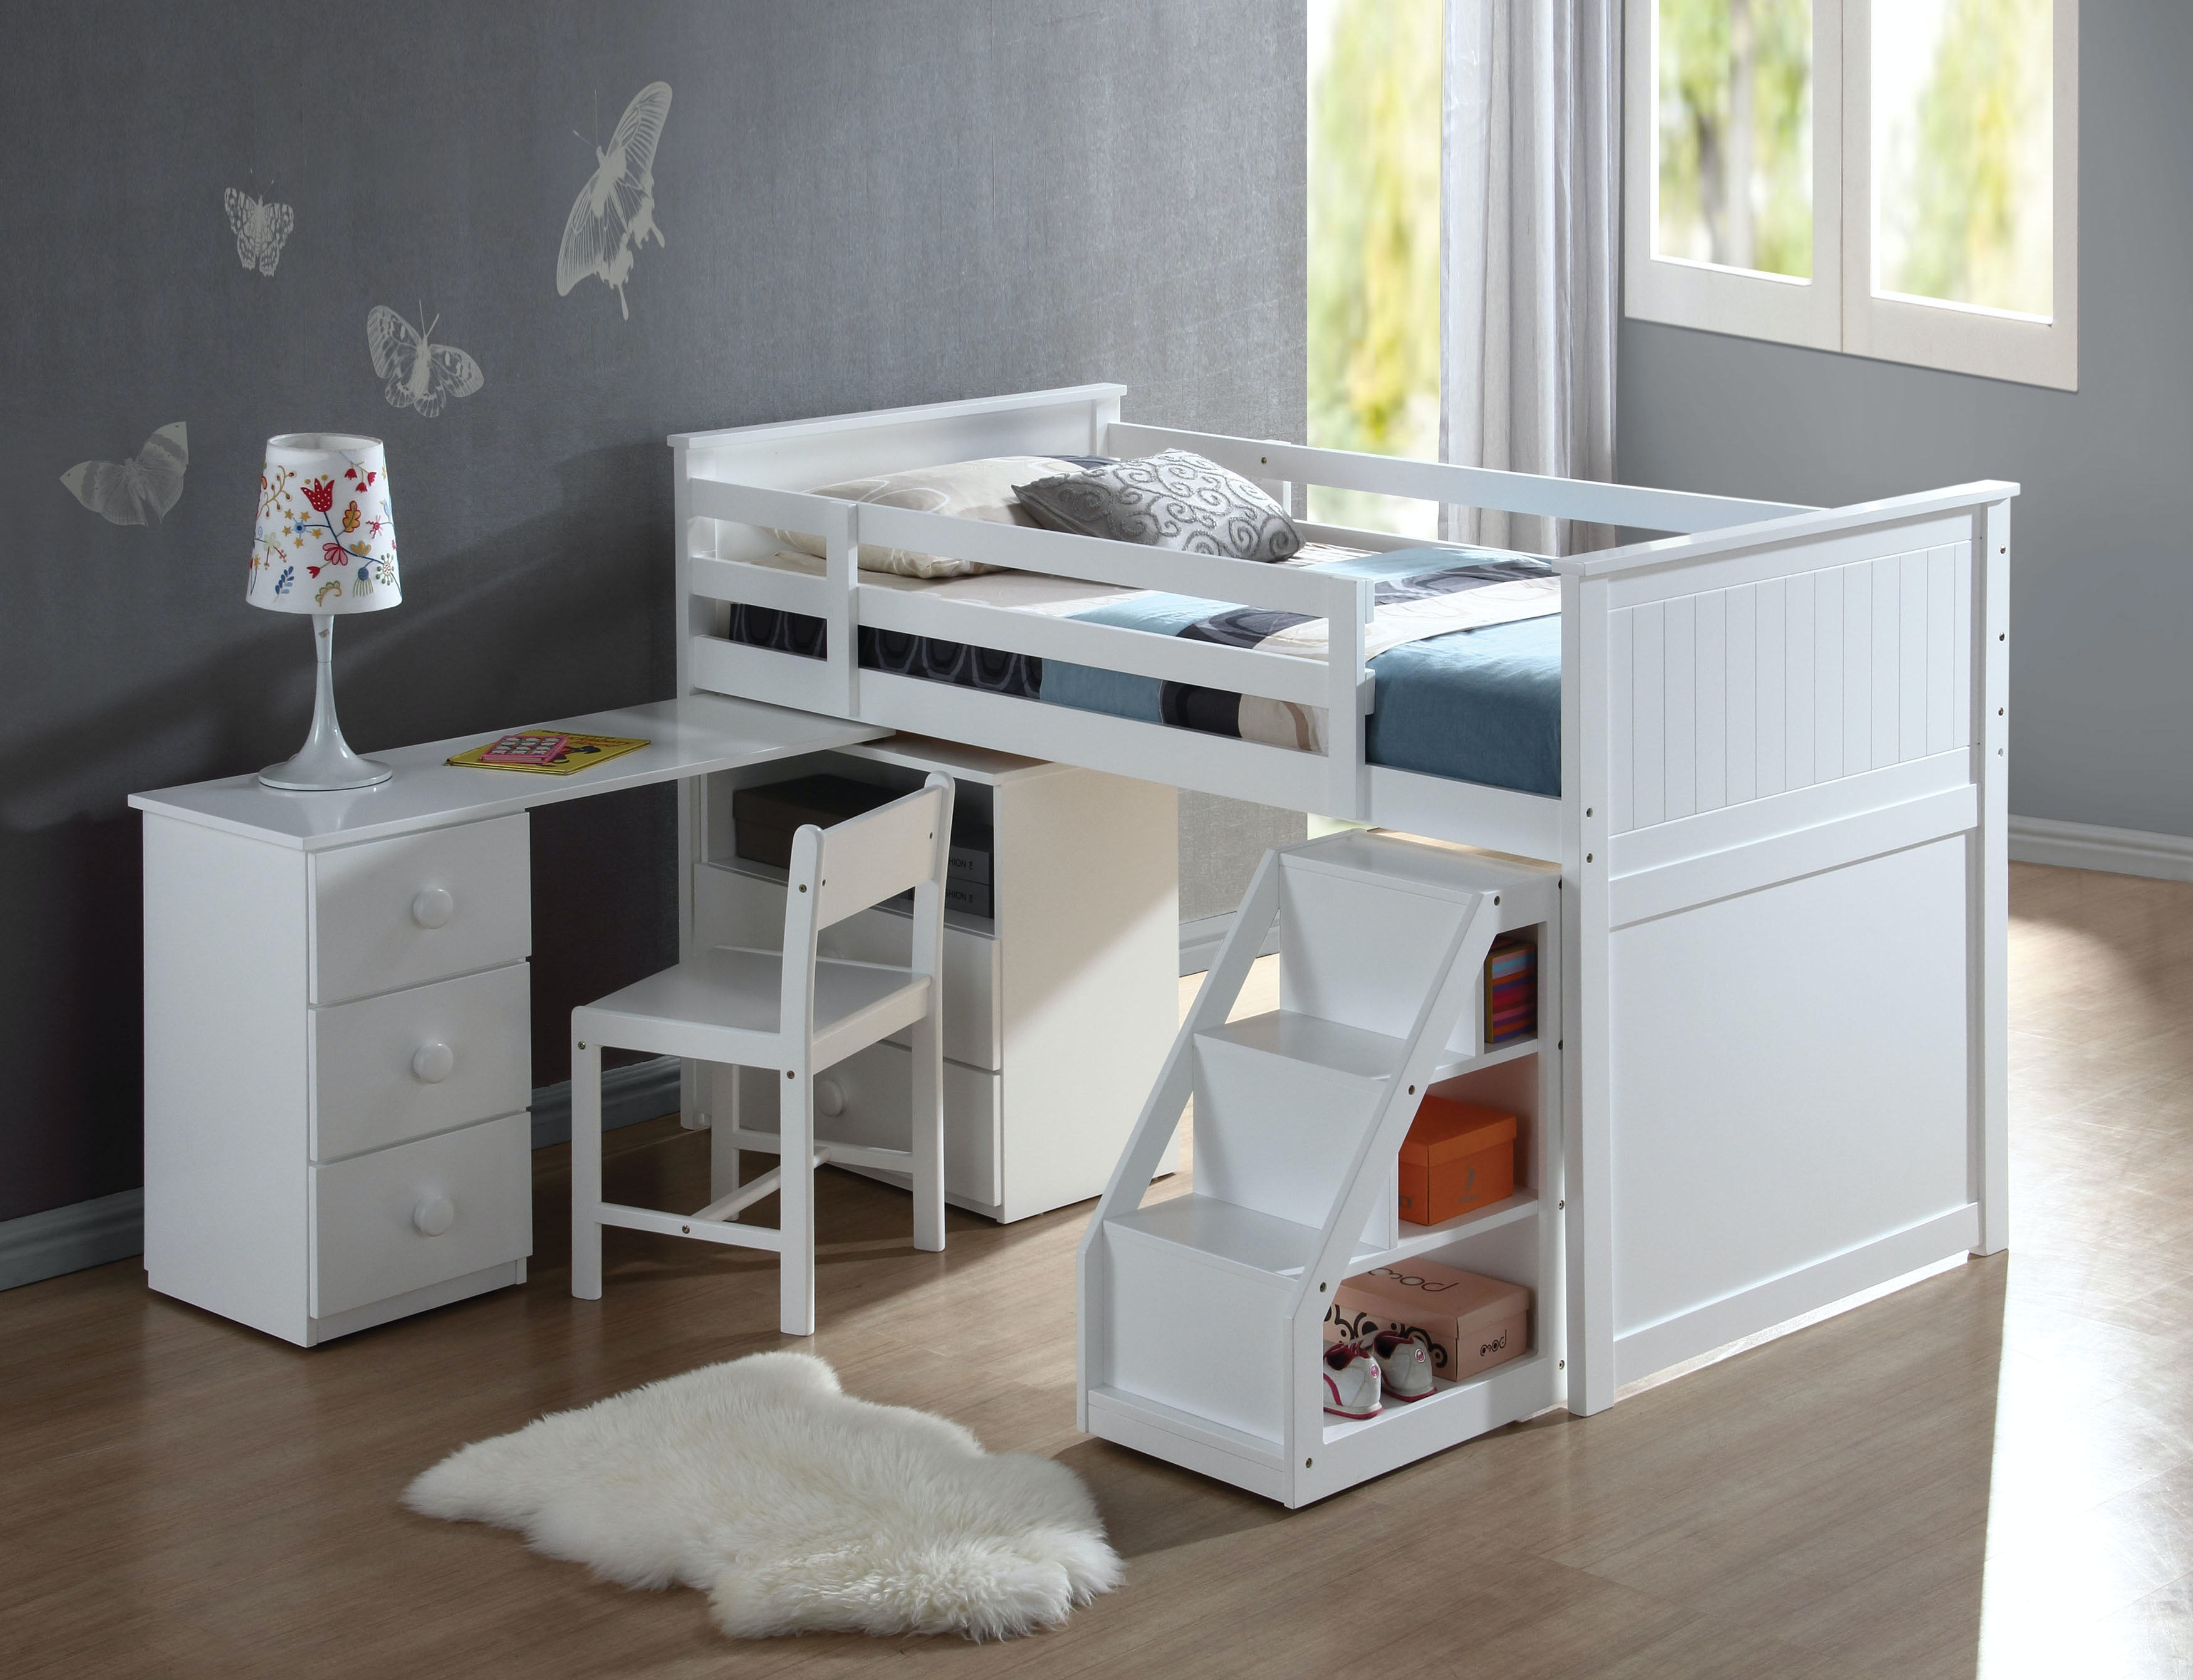 Merveilleux Acme Furniture Loft Bed With Chest And Swivel Desk 19405